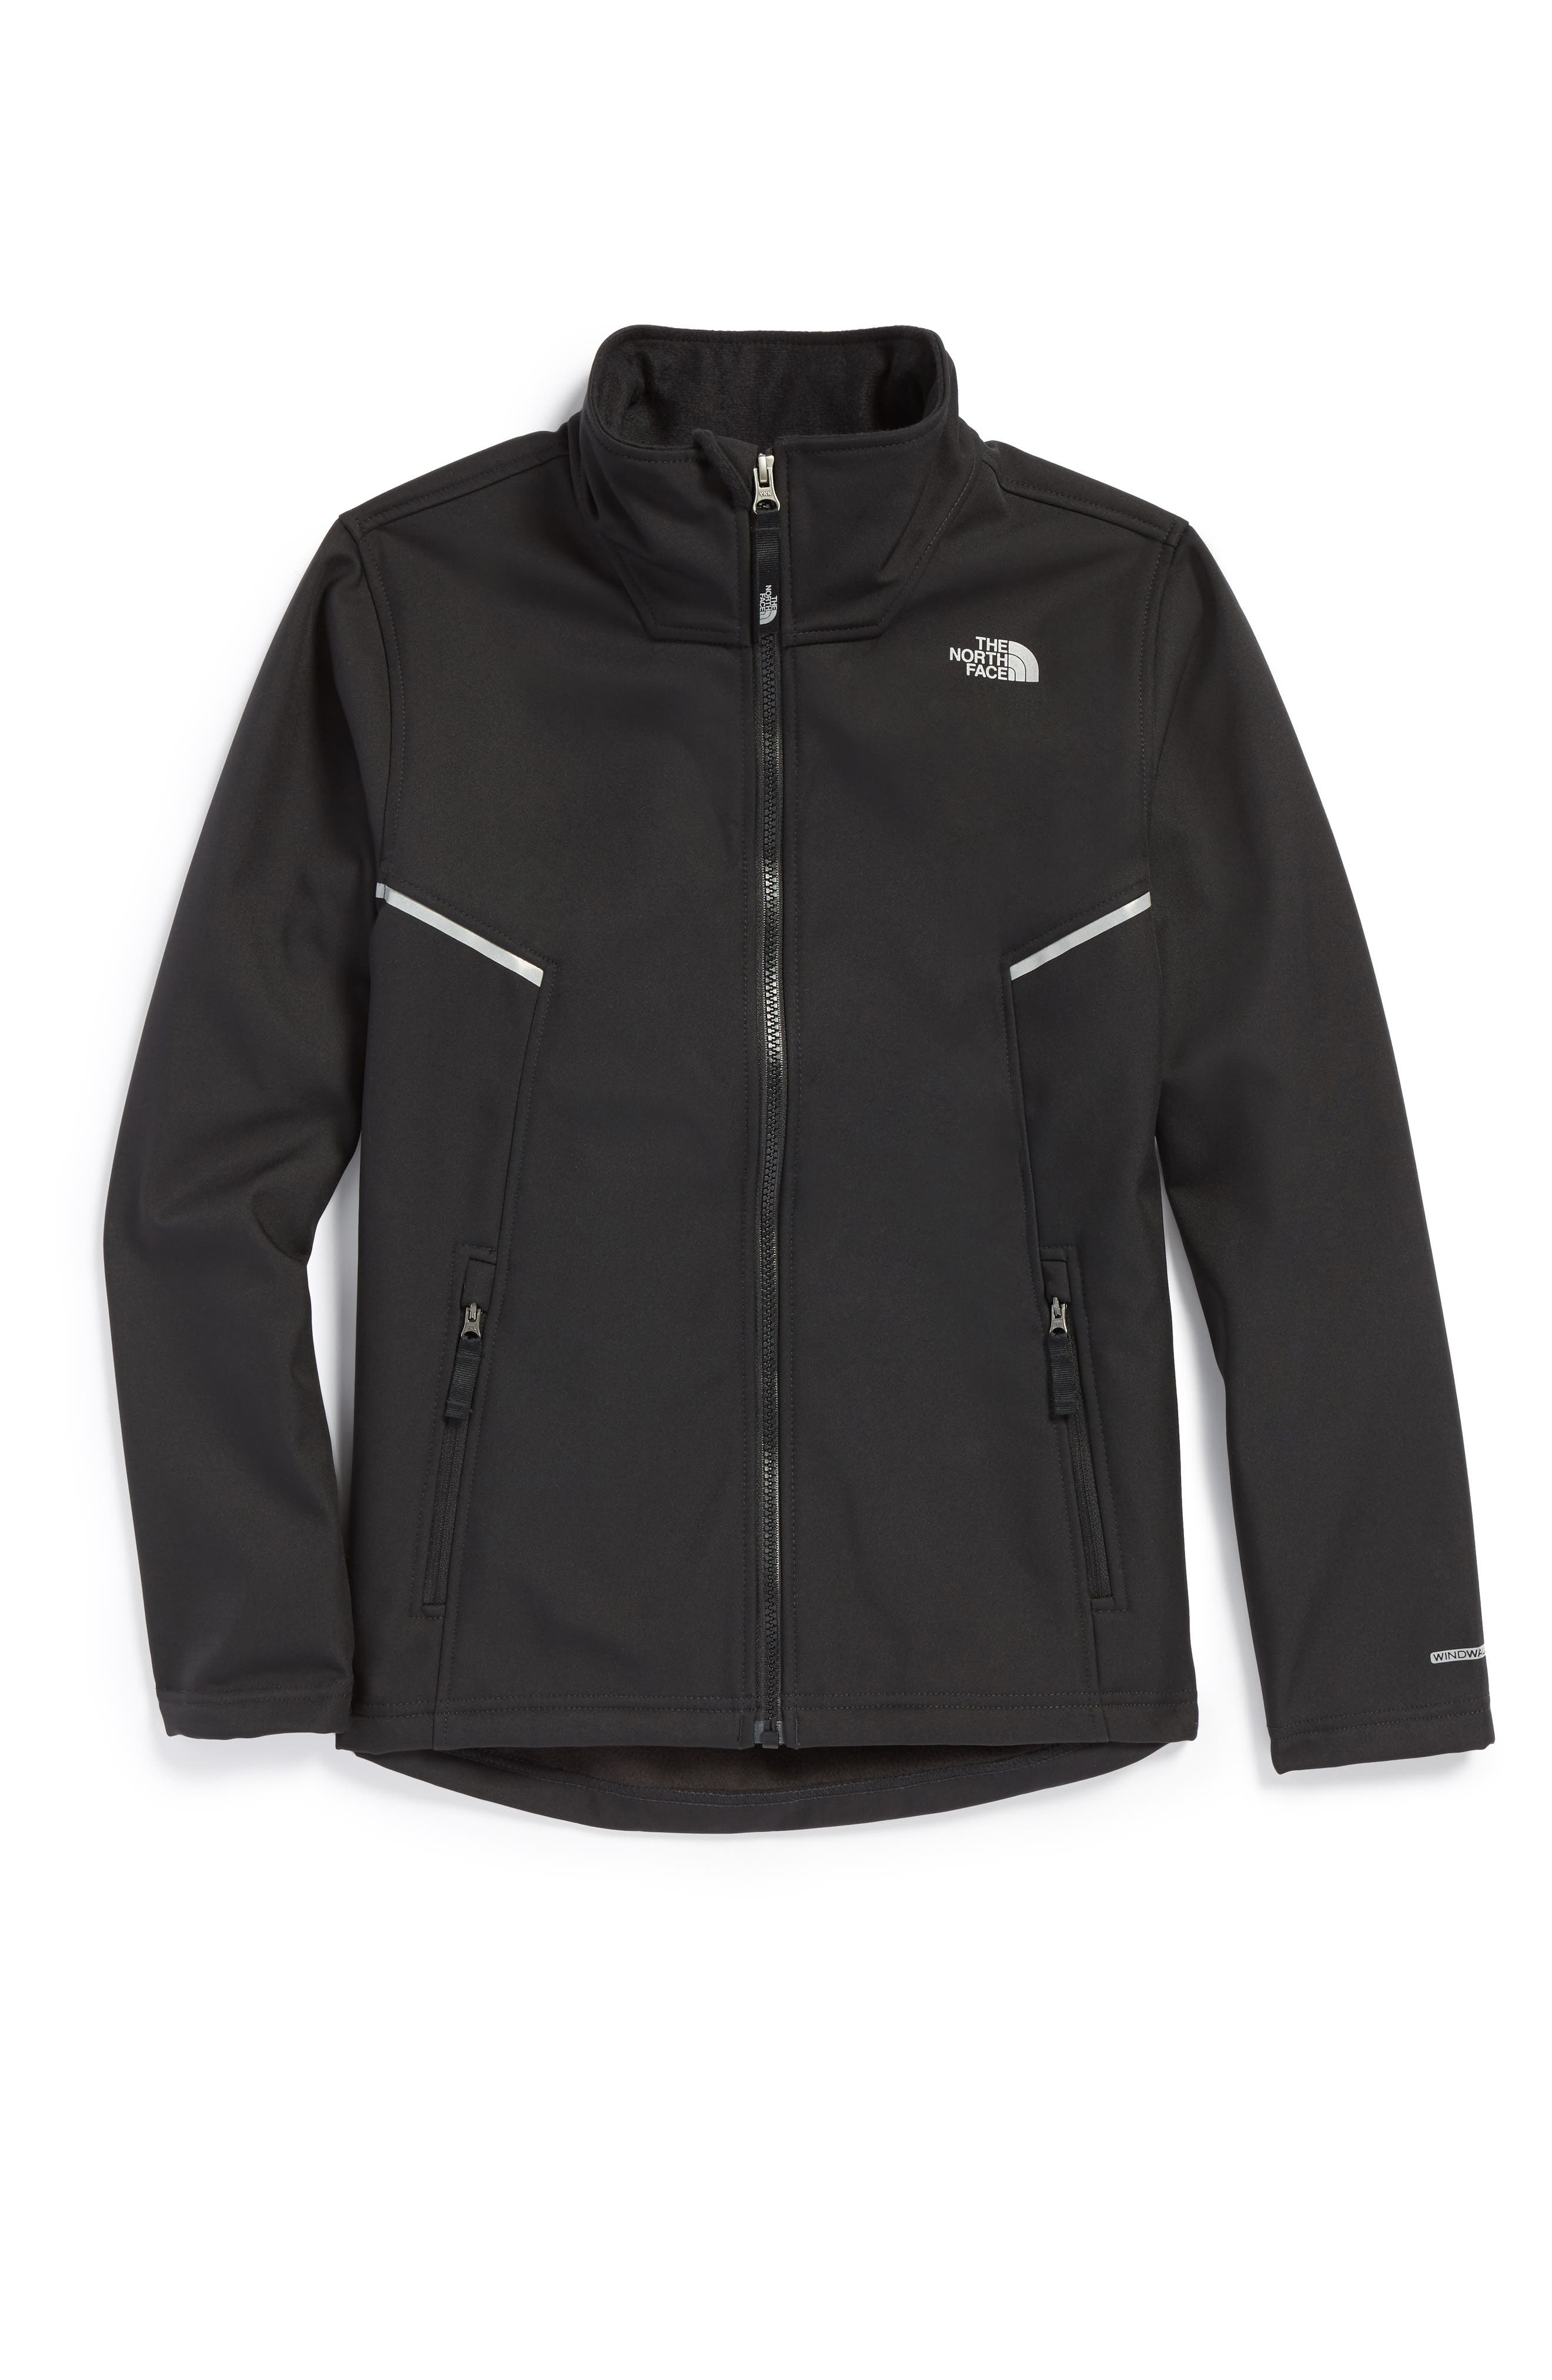 Alternate Image 1 Selected - The North Face Apex Bionic Water Repellent Jacket (Big Boys)